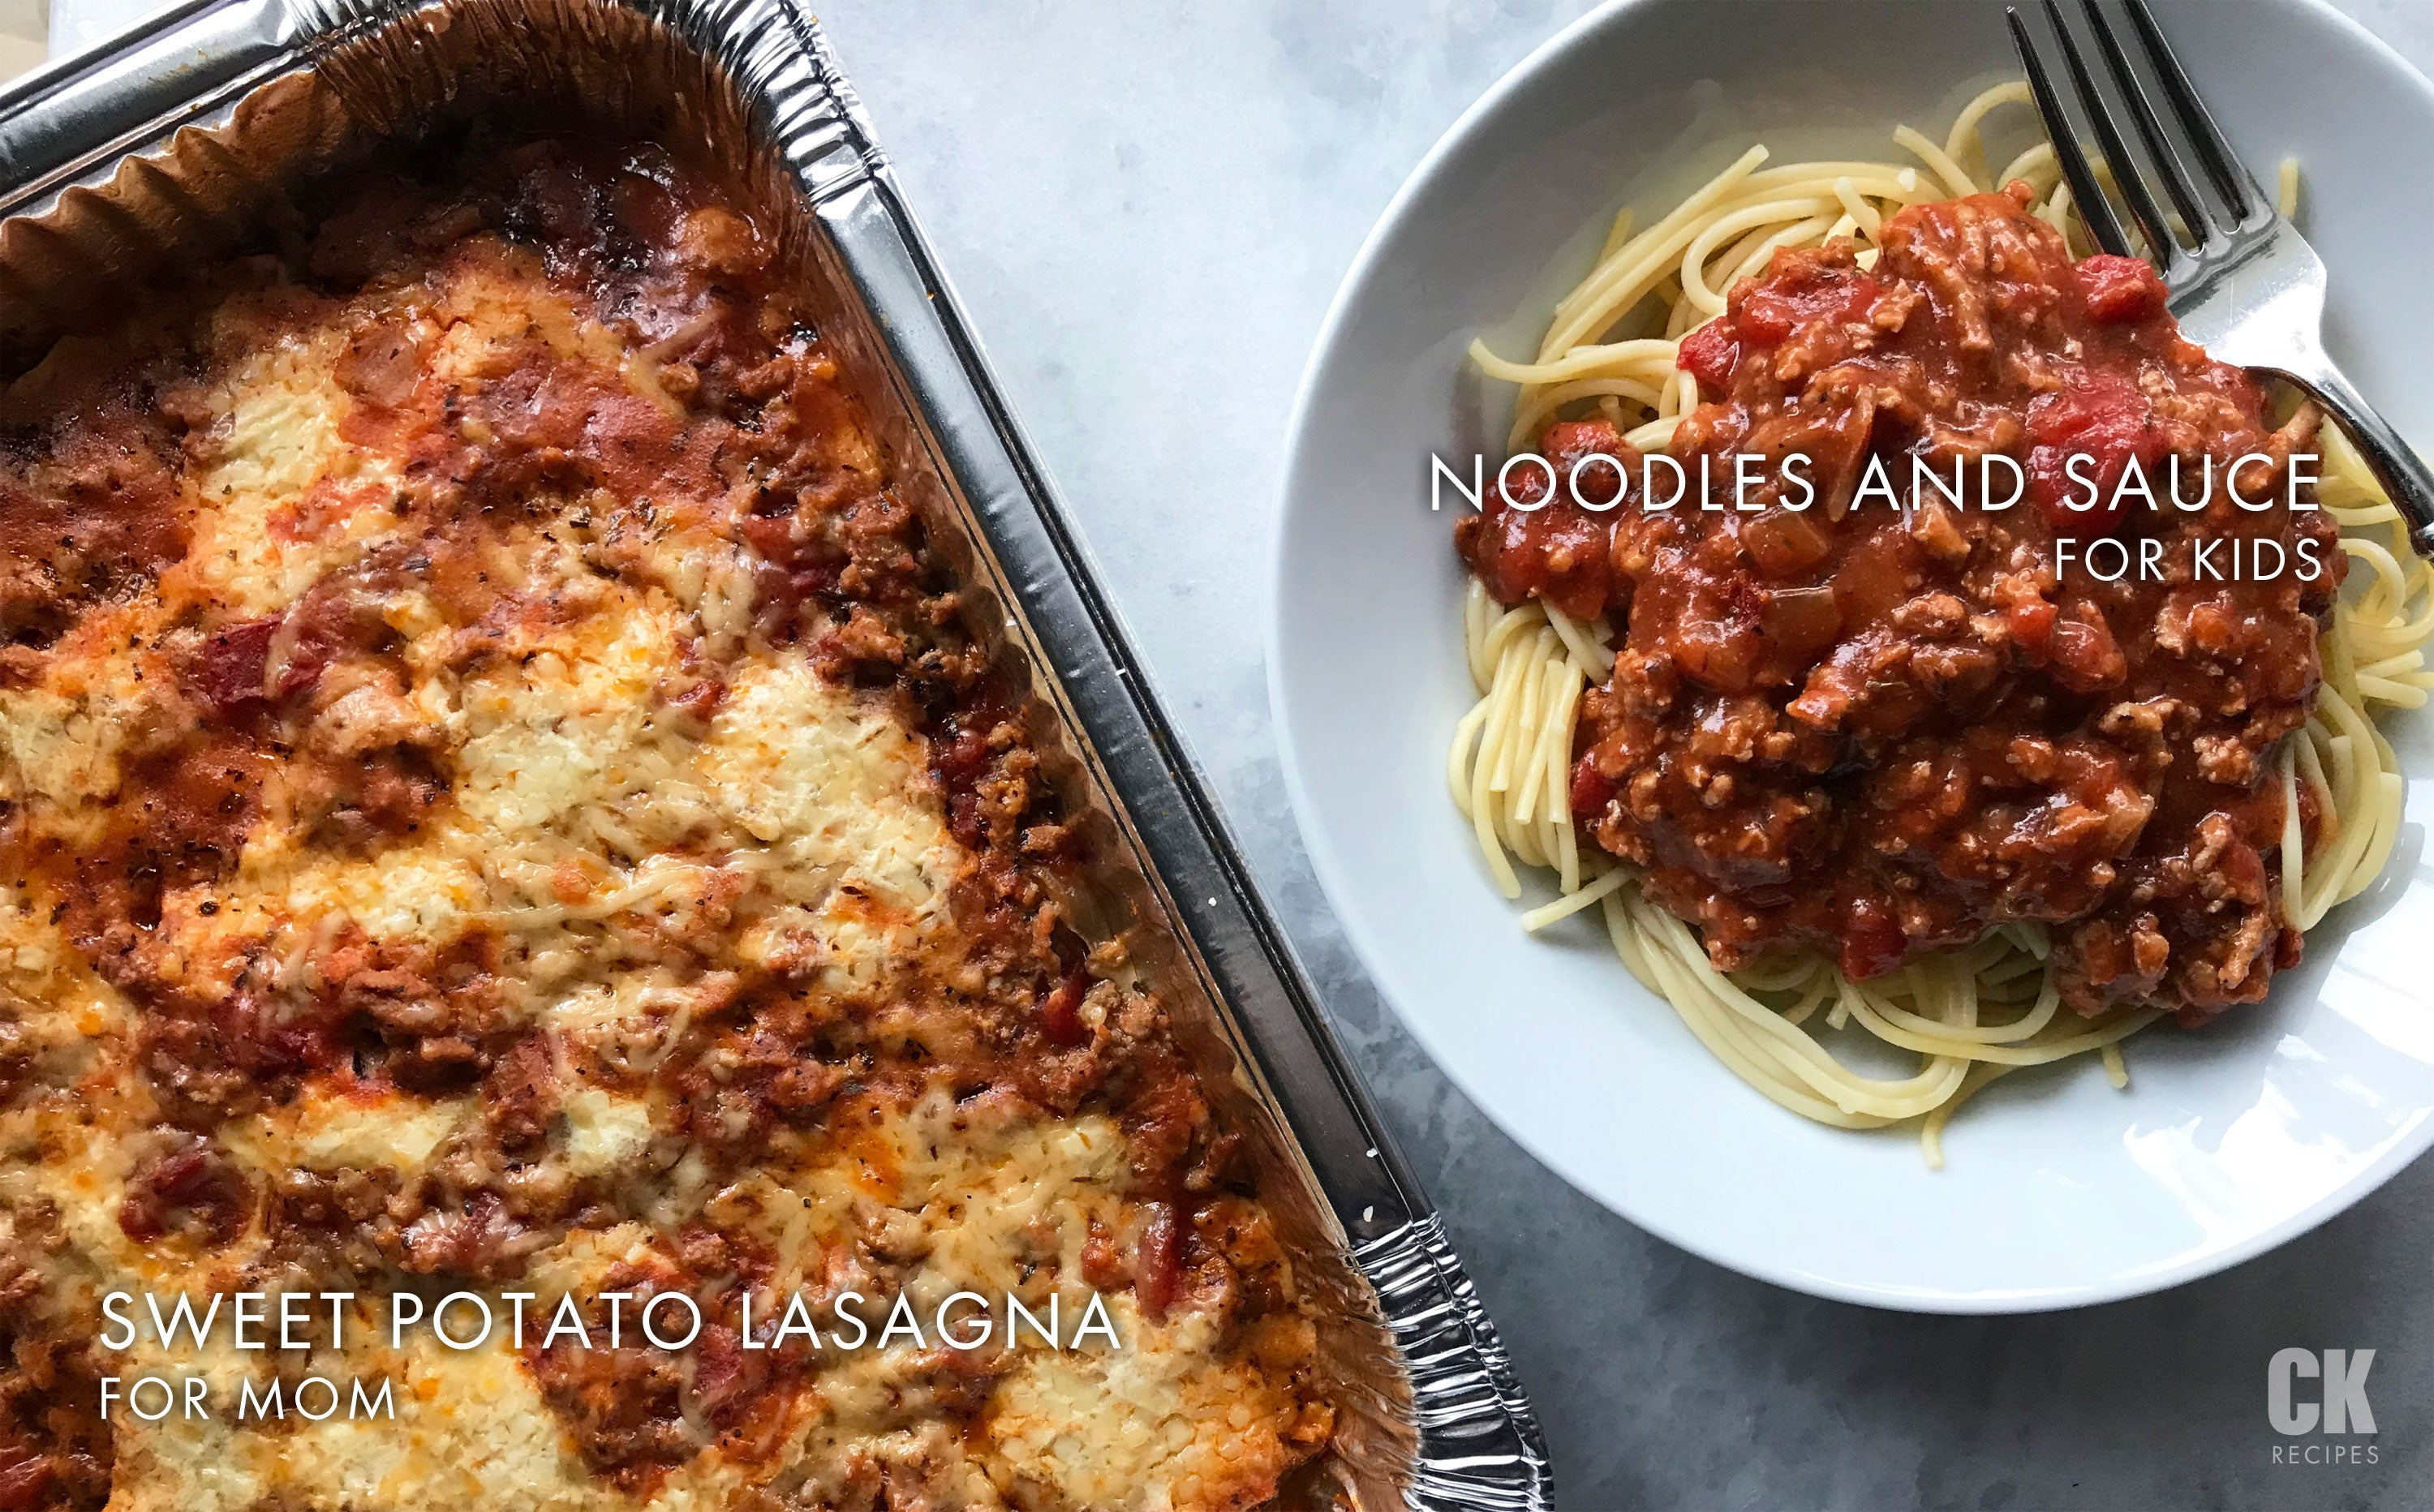 Lasagna-+-noodles-and-sauce1.jpg